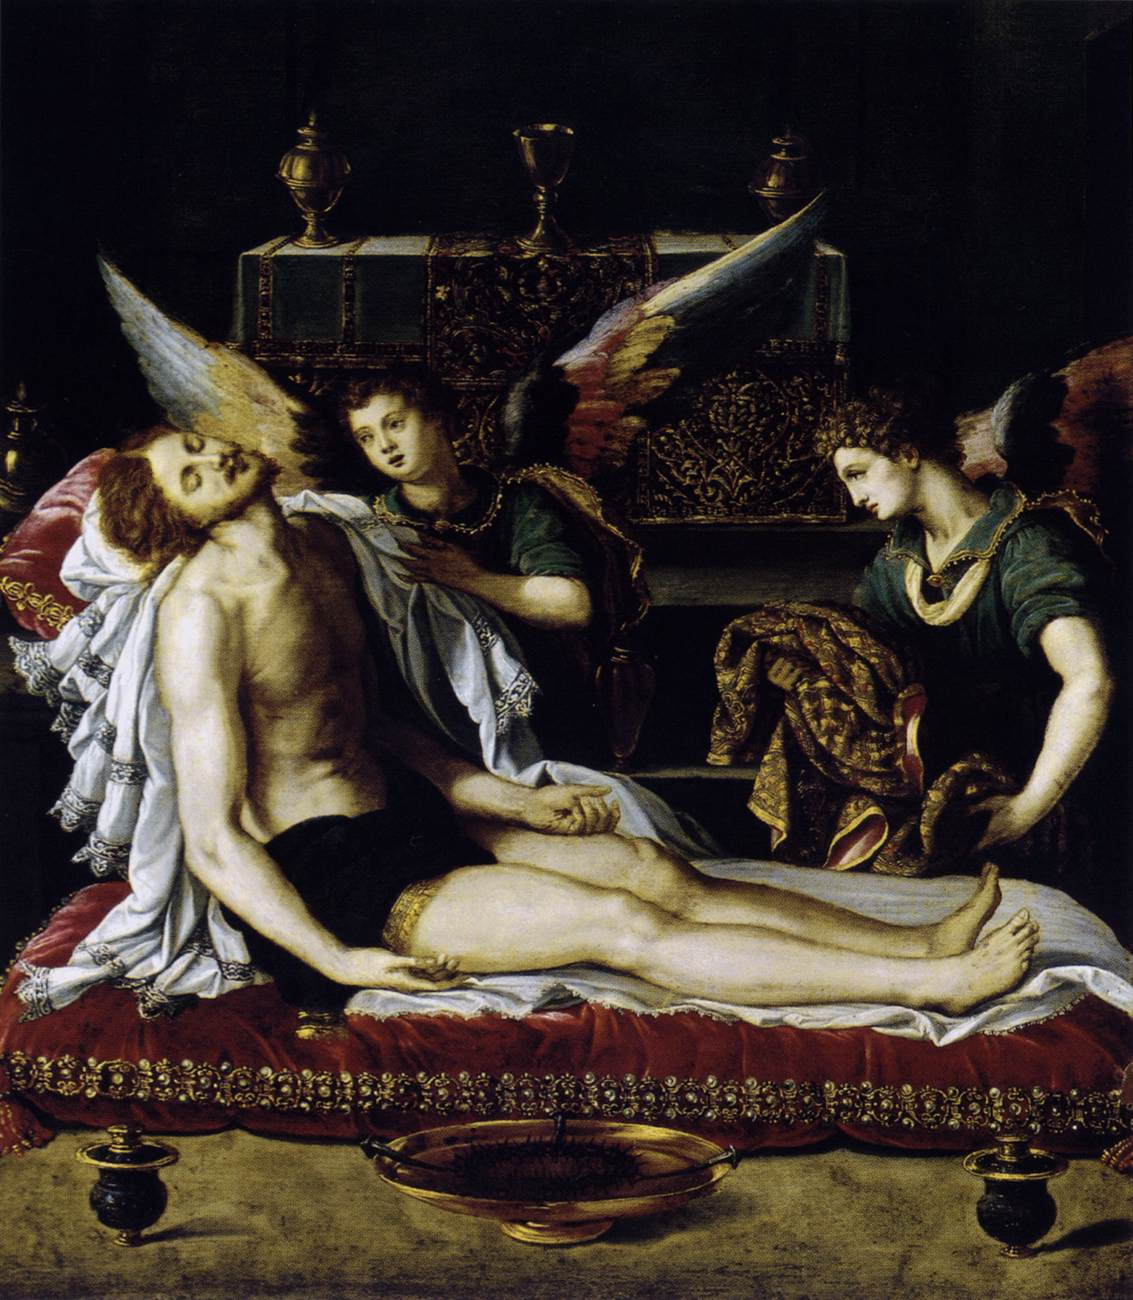 ALLORI, Alessandro The Body of Christ with Two Angels